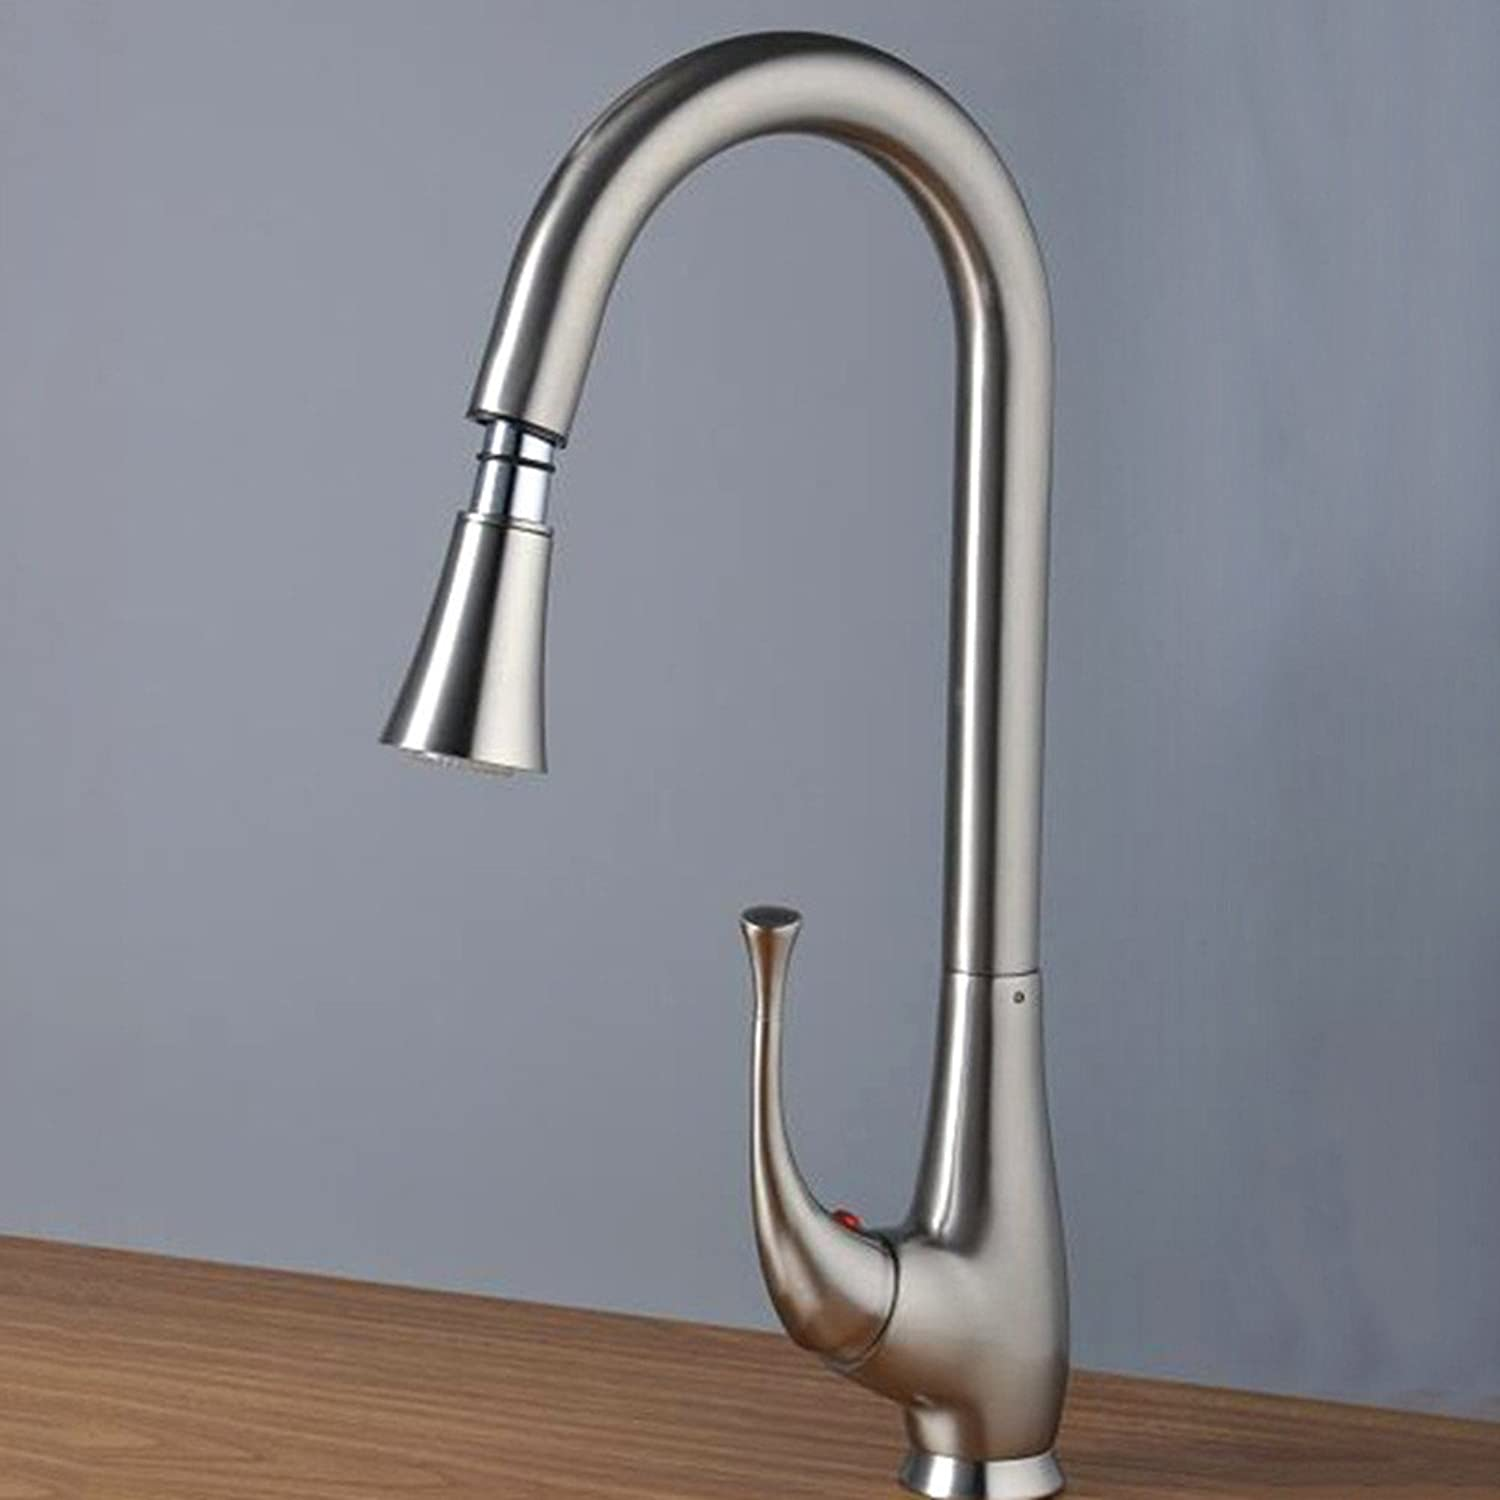 Commercial Single Lever Pull Down Kitchen Sink Faucet Brass Constructed Polished Modern Simple Copper Hot and Cold Kitchen Sink Faucet Copper Kitchen Sink Mixer